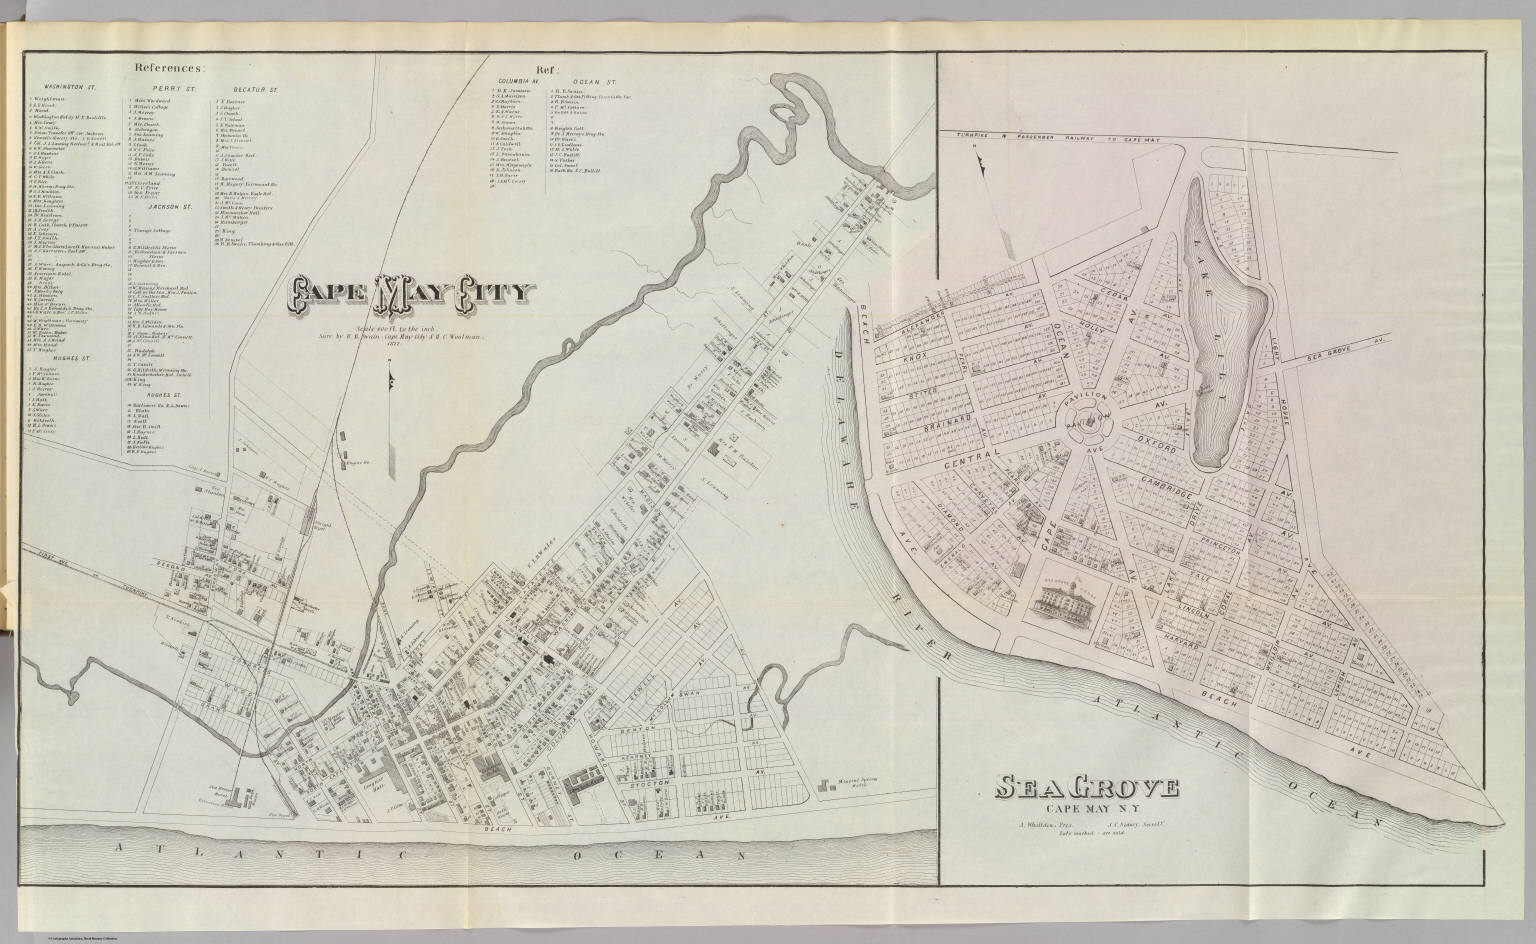 Cape May City Map